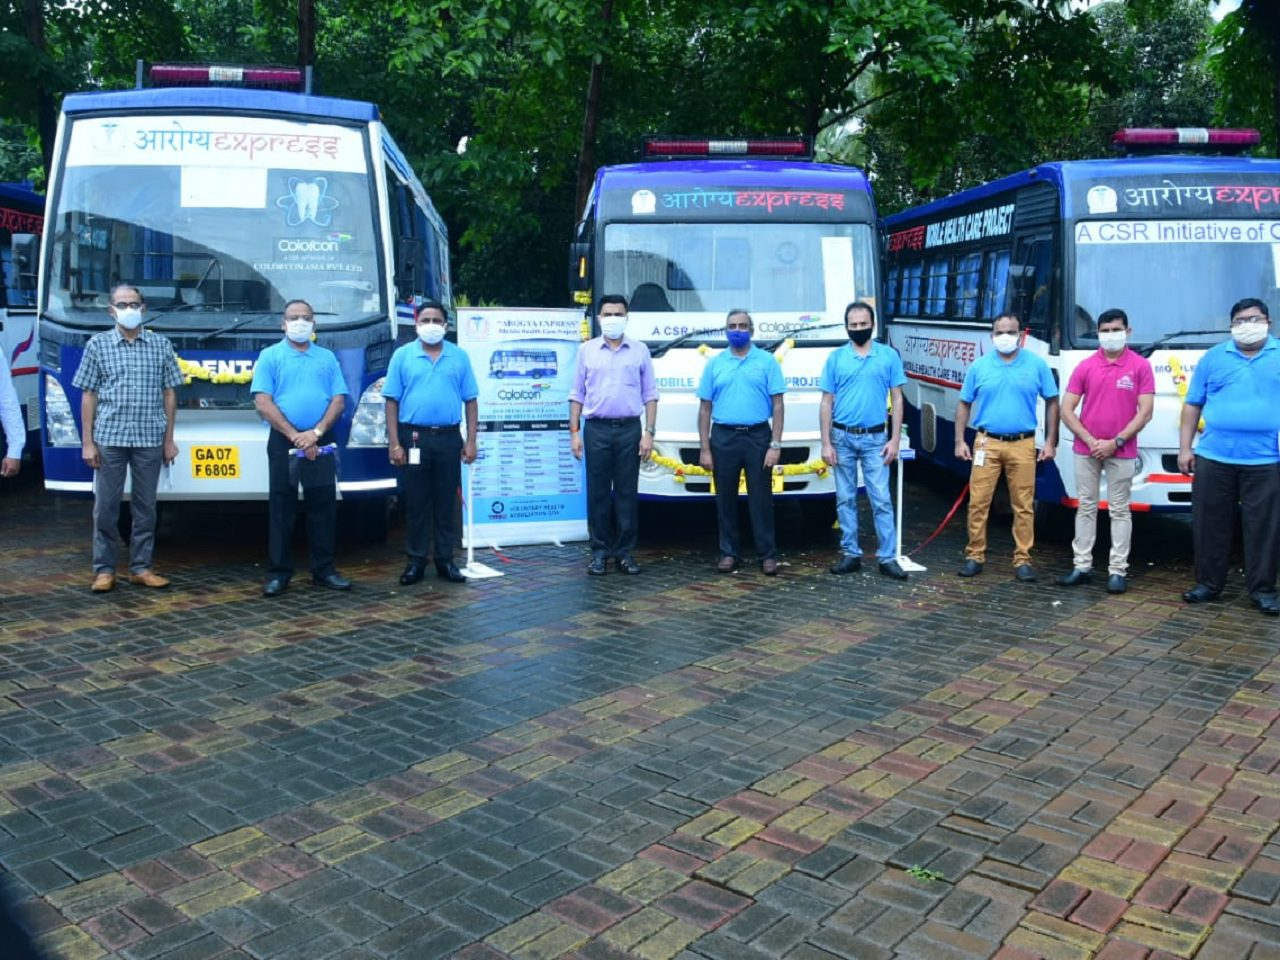 Chief Minister Dr Pramod Sawant flagged off the Aarogya Express Vans under CSR initiative of Colorcon.